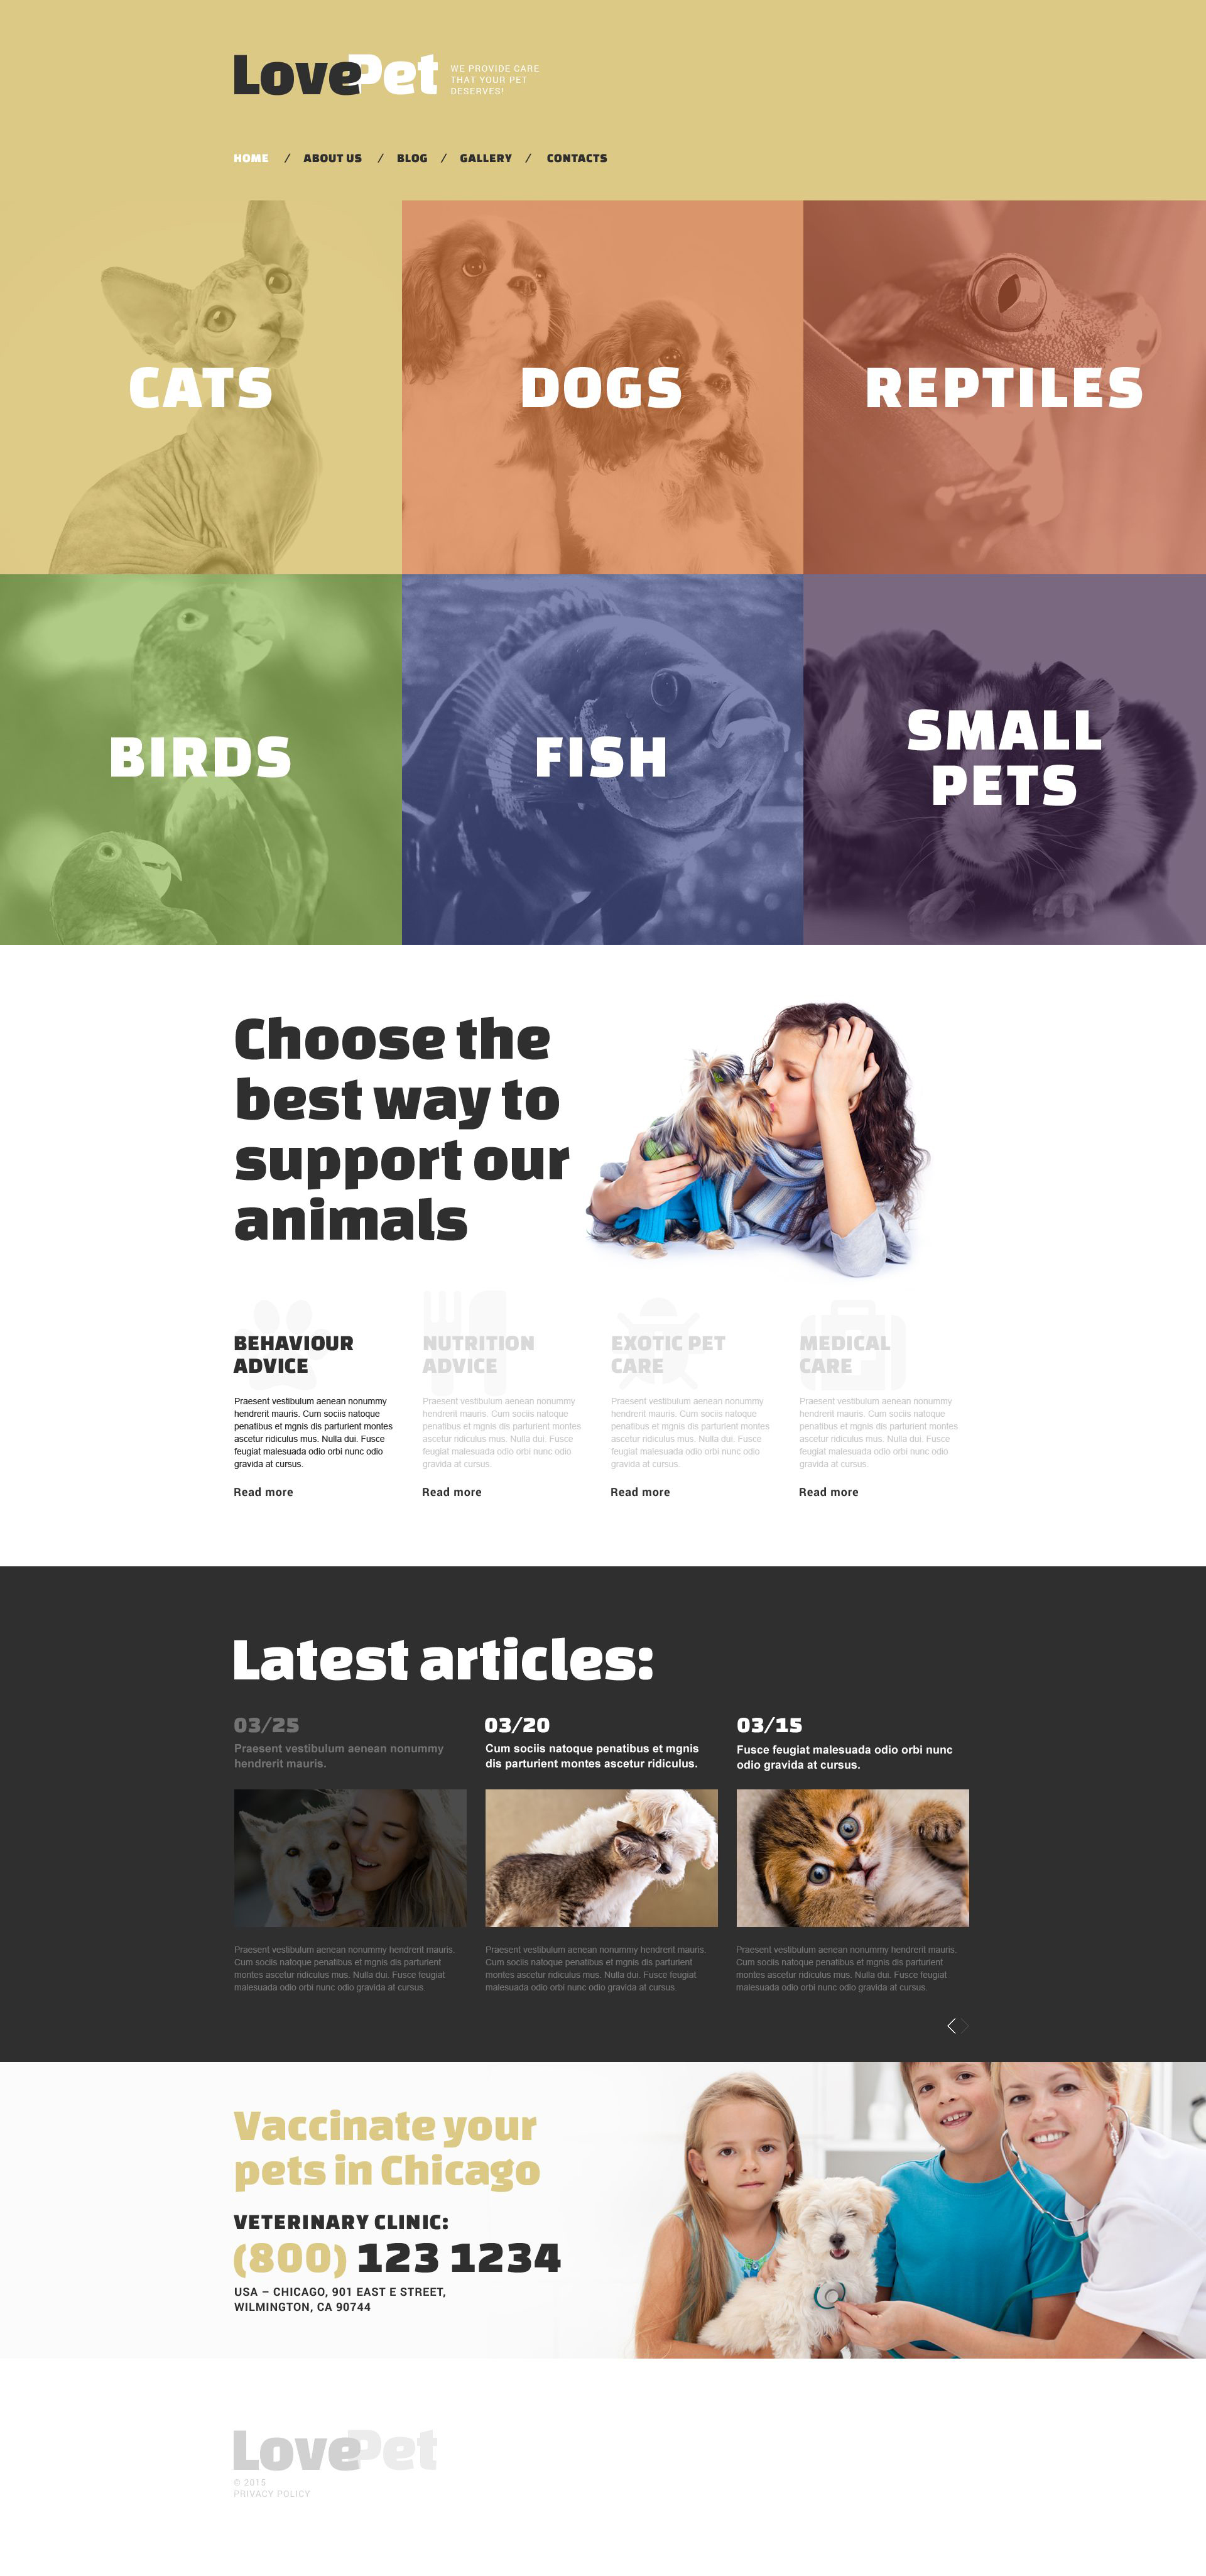 The Love Pet Drupal Design 53821, one of the best Drupal templates of its kind (animals & pets, most popular), also known as love pet Drupal template, pets Drupal template, cat club Drupal template, kitten clinical Drupal template, veterinary Drupal template, vet Drupal template, tips Drupal template, feed Drupal template, medicine Drupal template, staff Drupal template, services Drupal template, breed Drupal template, age Drupal template, color Drupal template, accommodation Drupal template, adaptable Drupal template, pet Drupal template, apparel Drupal template, bed Drupal template, dishes Drupal template, bowl Drupal template, bone Drupal template, cleanup Drupal template, collar Drupal template, flea Drupal template, tick Drupal template, grooming Drupal template, supplies Drupal template, vitamins Drupal template, recommendation Drupal template, health Drupal template, leash and related with love pet, pets, cat club, kitten clinical, veterinary, vet, tips, feed, medicine, staff, services, breed, age, color, accommodation, adaptable, pet, apparel, bed, dishes, bowl, bone, cleanup, collar, flea, tick, grooming, supplies, vitamins, recommendation, health, leash, etc.